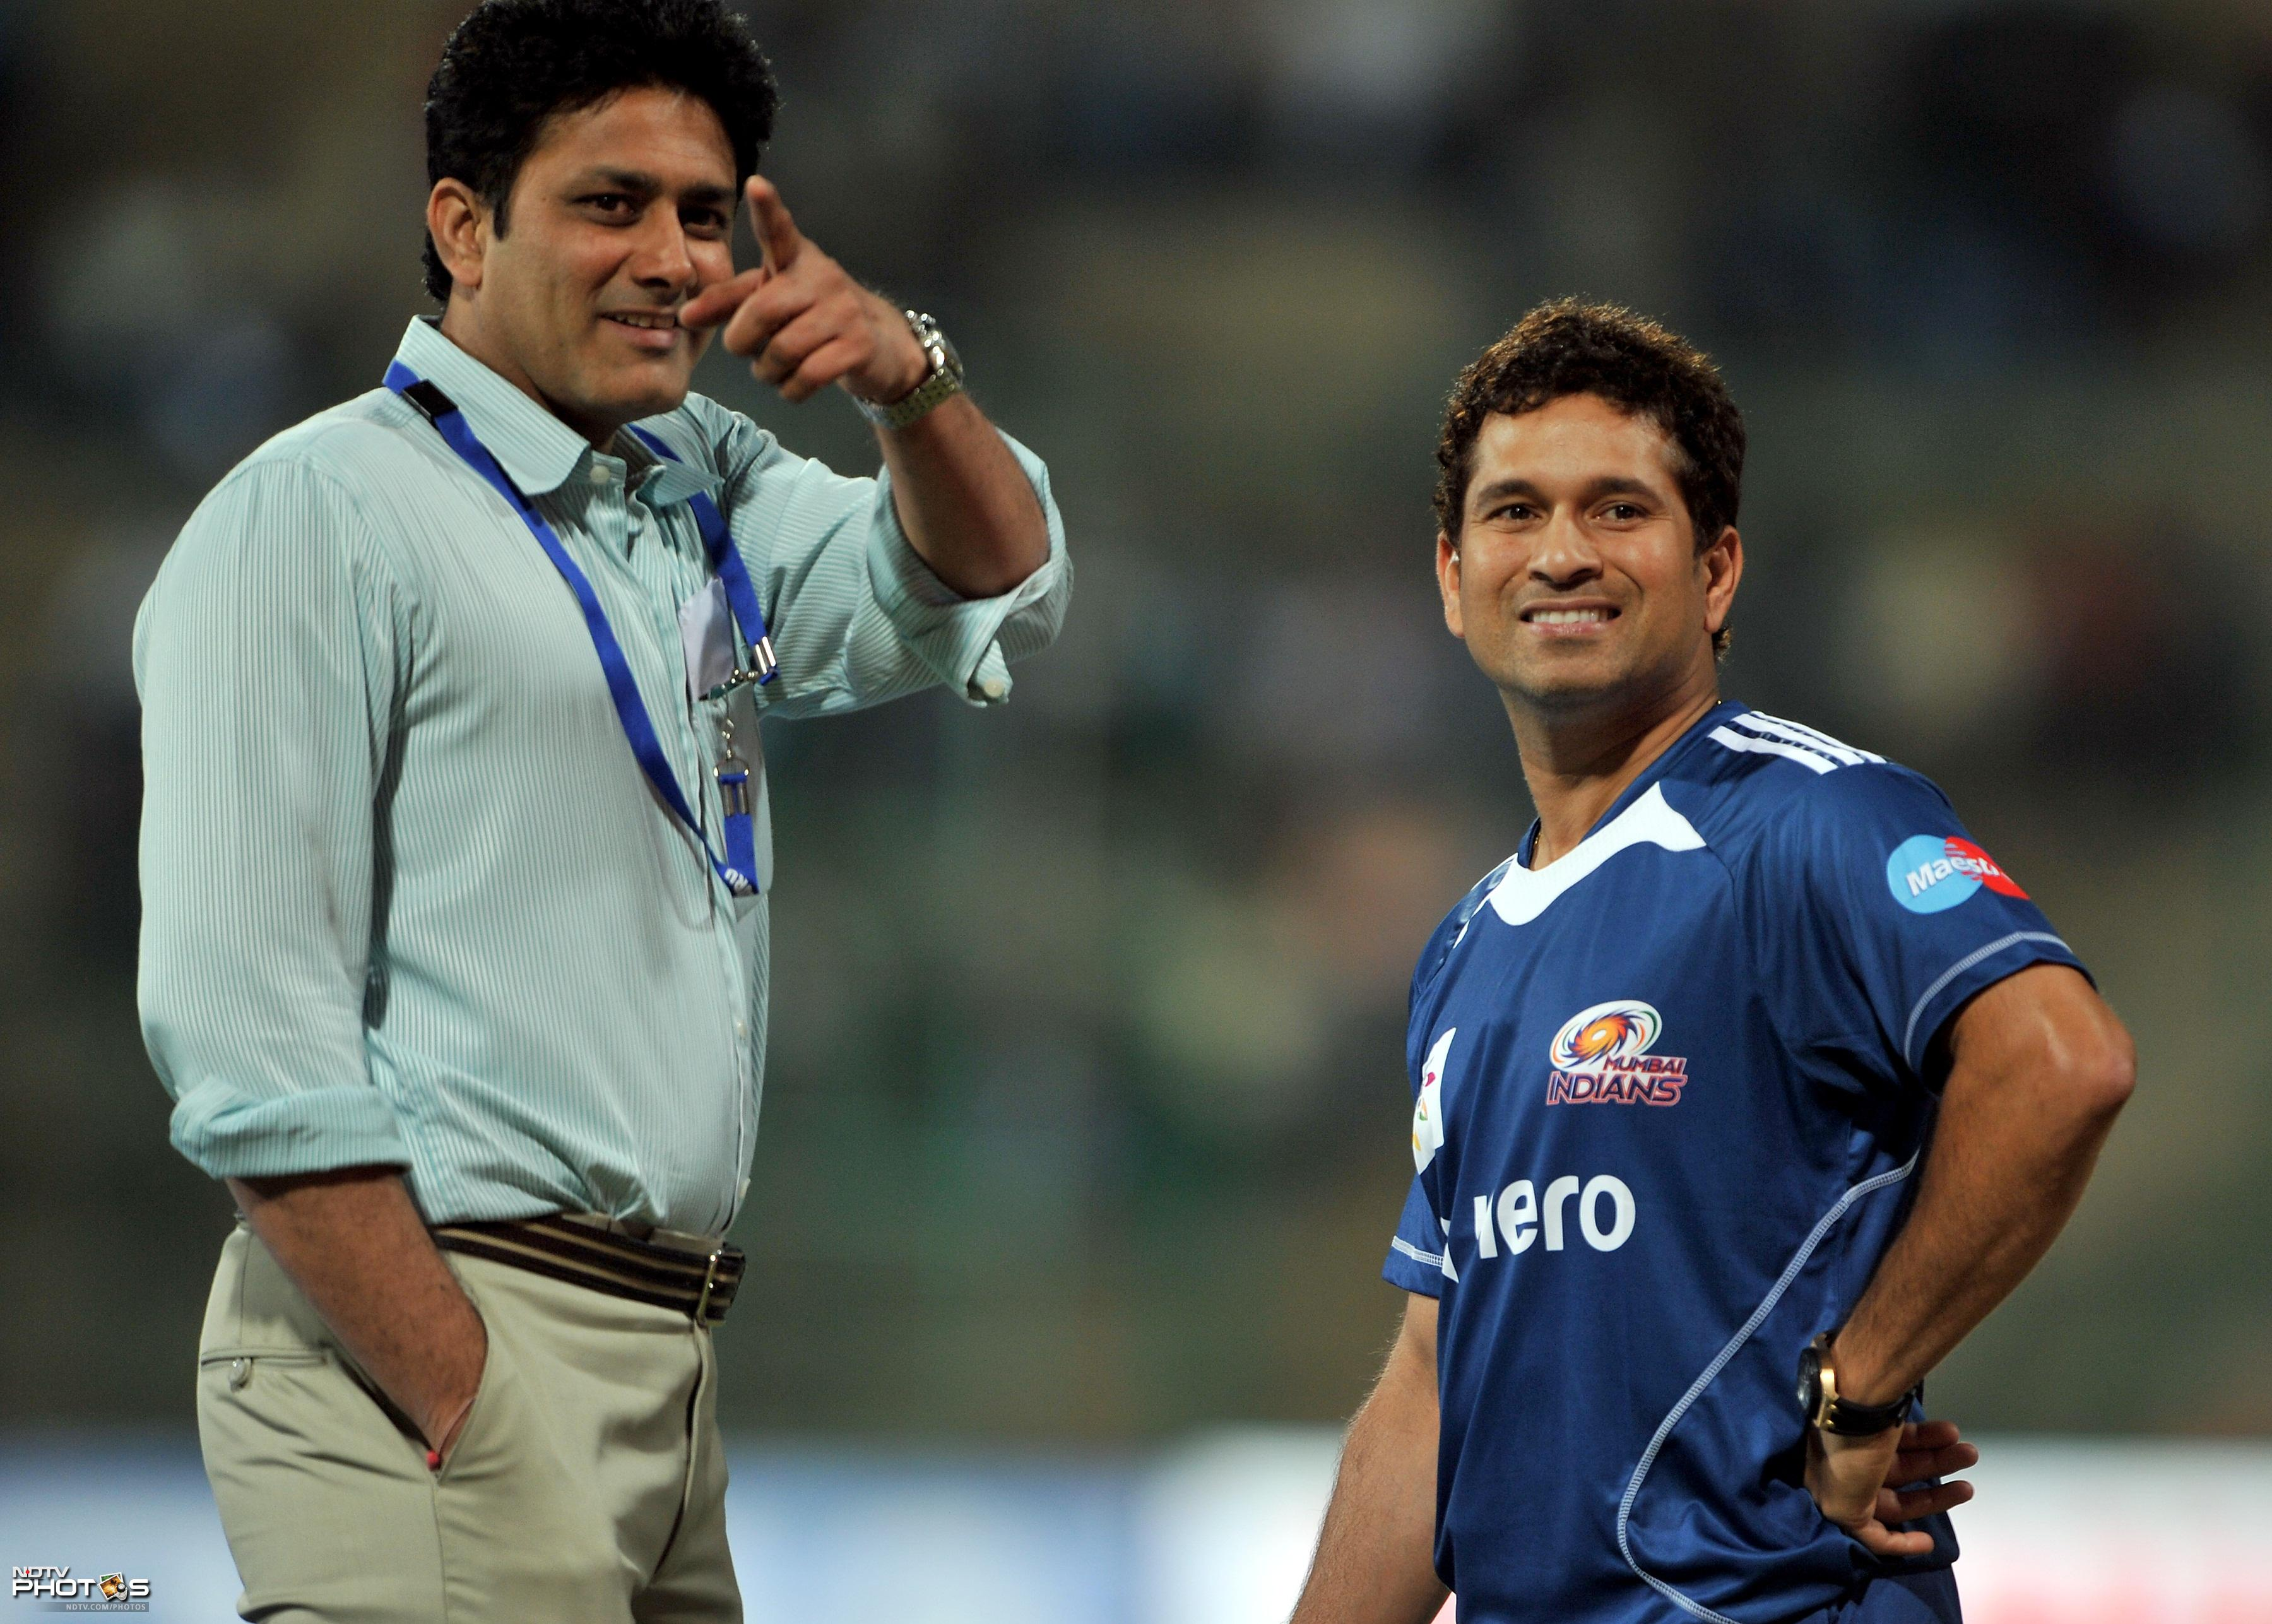 Former Indian cricketer and current Karnataka State Association (KSCA) president Anil Kumble gestures as Mumbai Indians player Sachin Tendulkar looks on before the start of the Champions League Twenty20 Group A match between Mumbai Indians and Trinidad and Tobago at the M. Chinnaswamy Stadium in Bangalore. (AFP Photo)